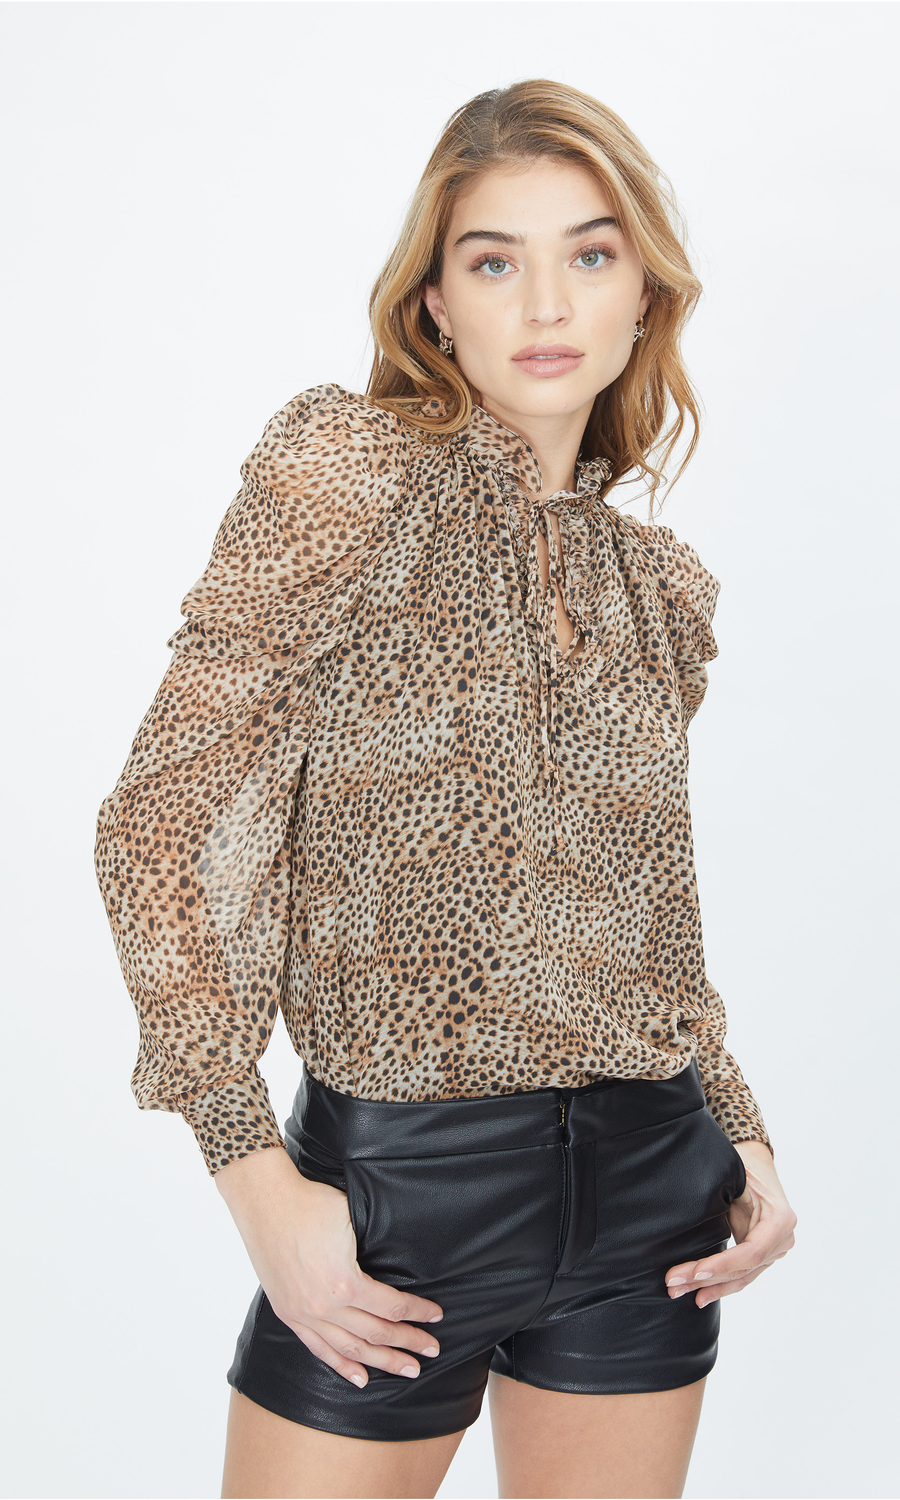 Lou Baby Cheetah Blouse